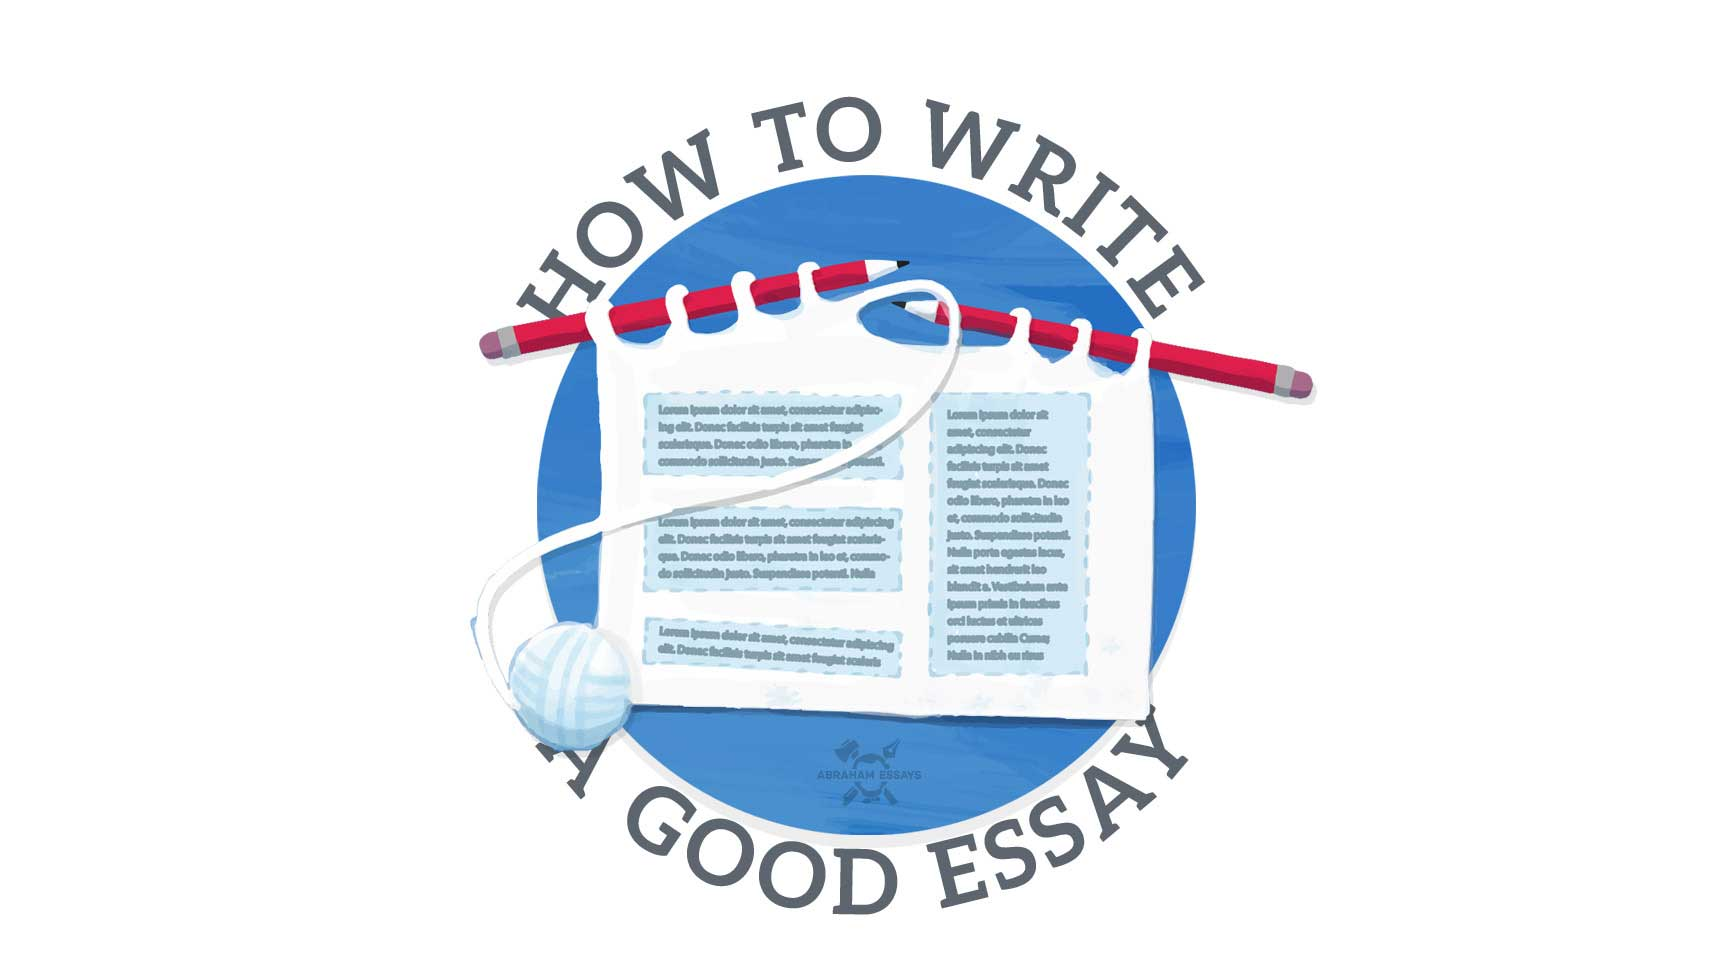 How to write a good essay? Topics, Outline, Tips